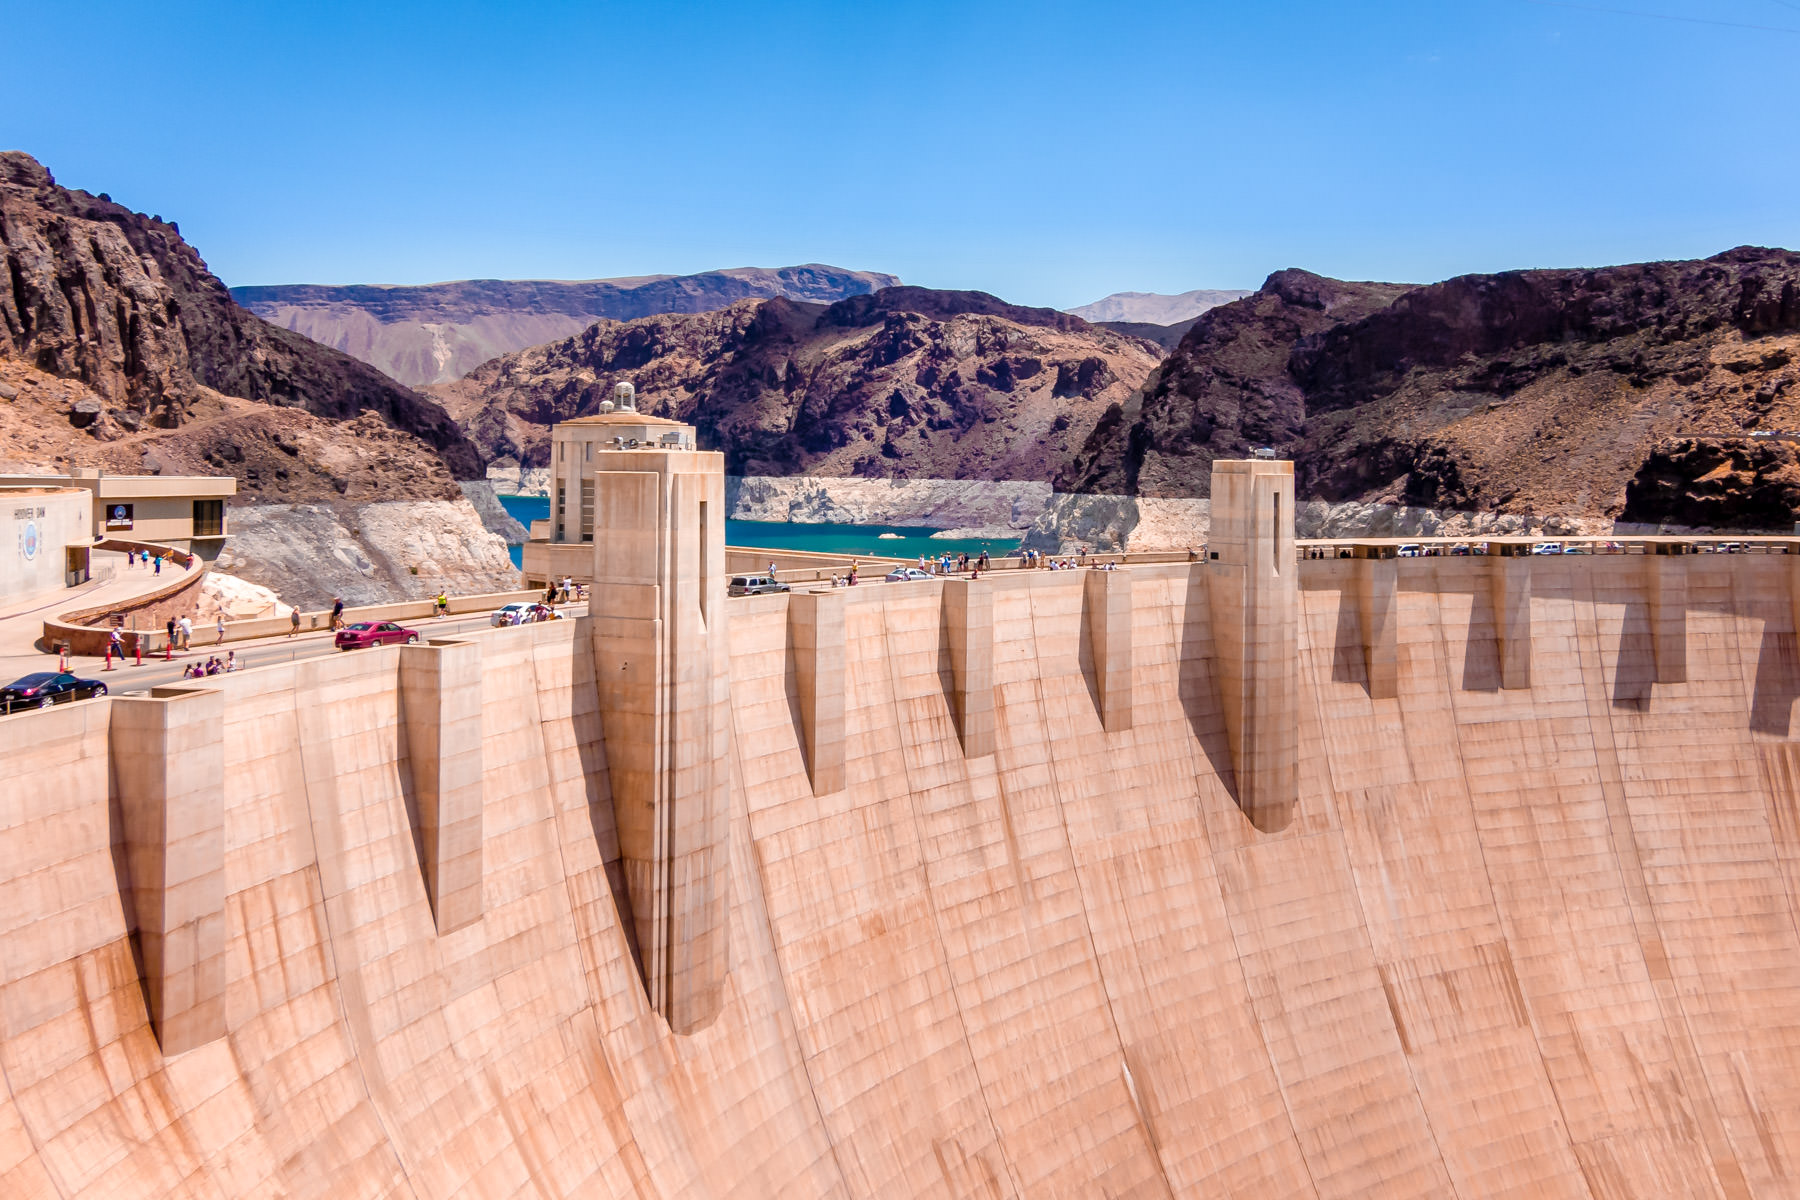 Overlooking Hoover Dam from the Nevada side of the Colorado River.